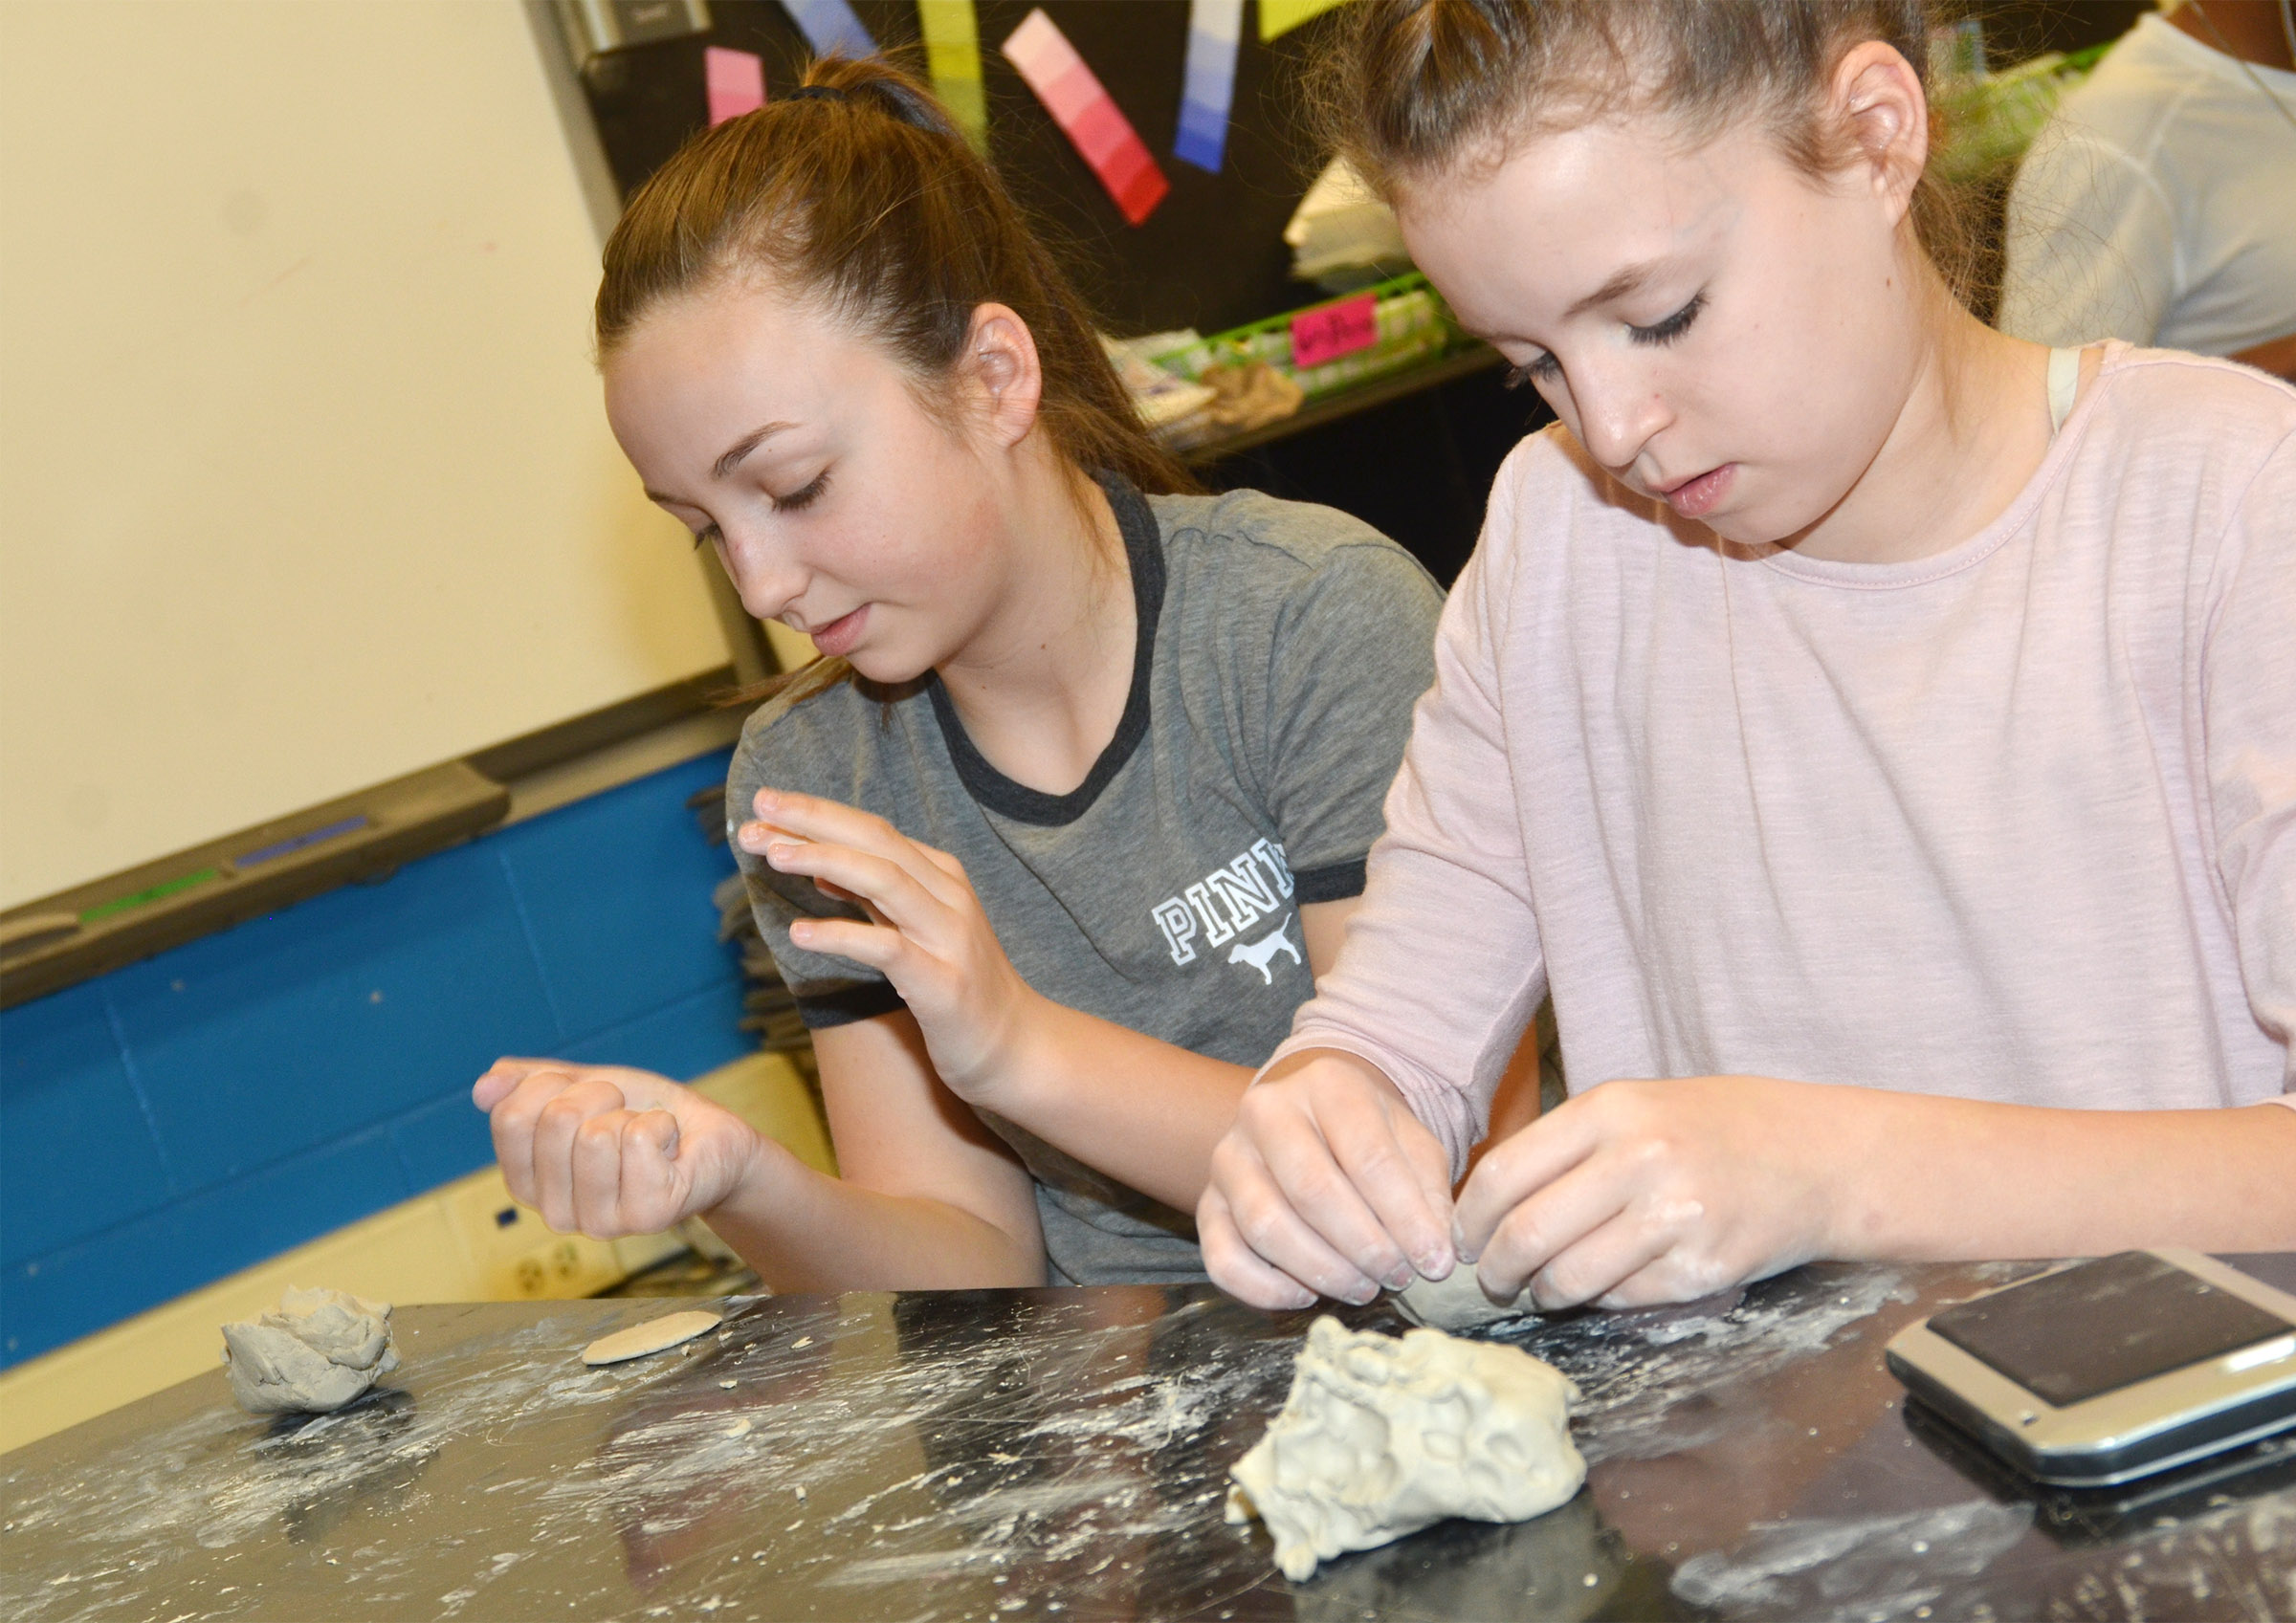 Campbellsville Middle School seventh-graders Lainey Watson, at left, and Rylee Petett shape their clay.